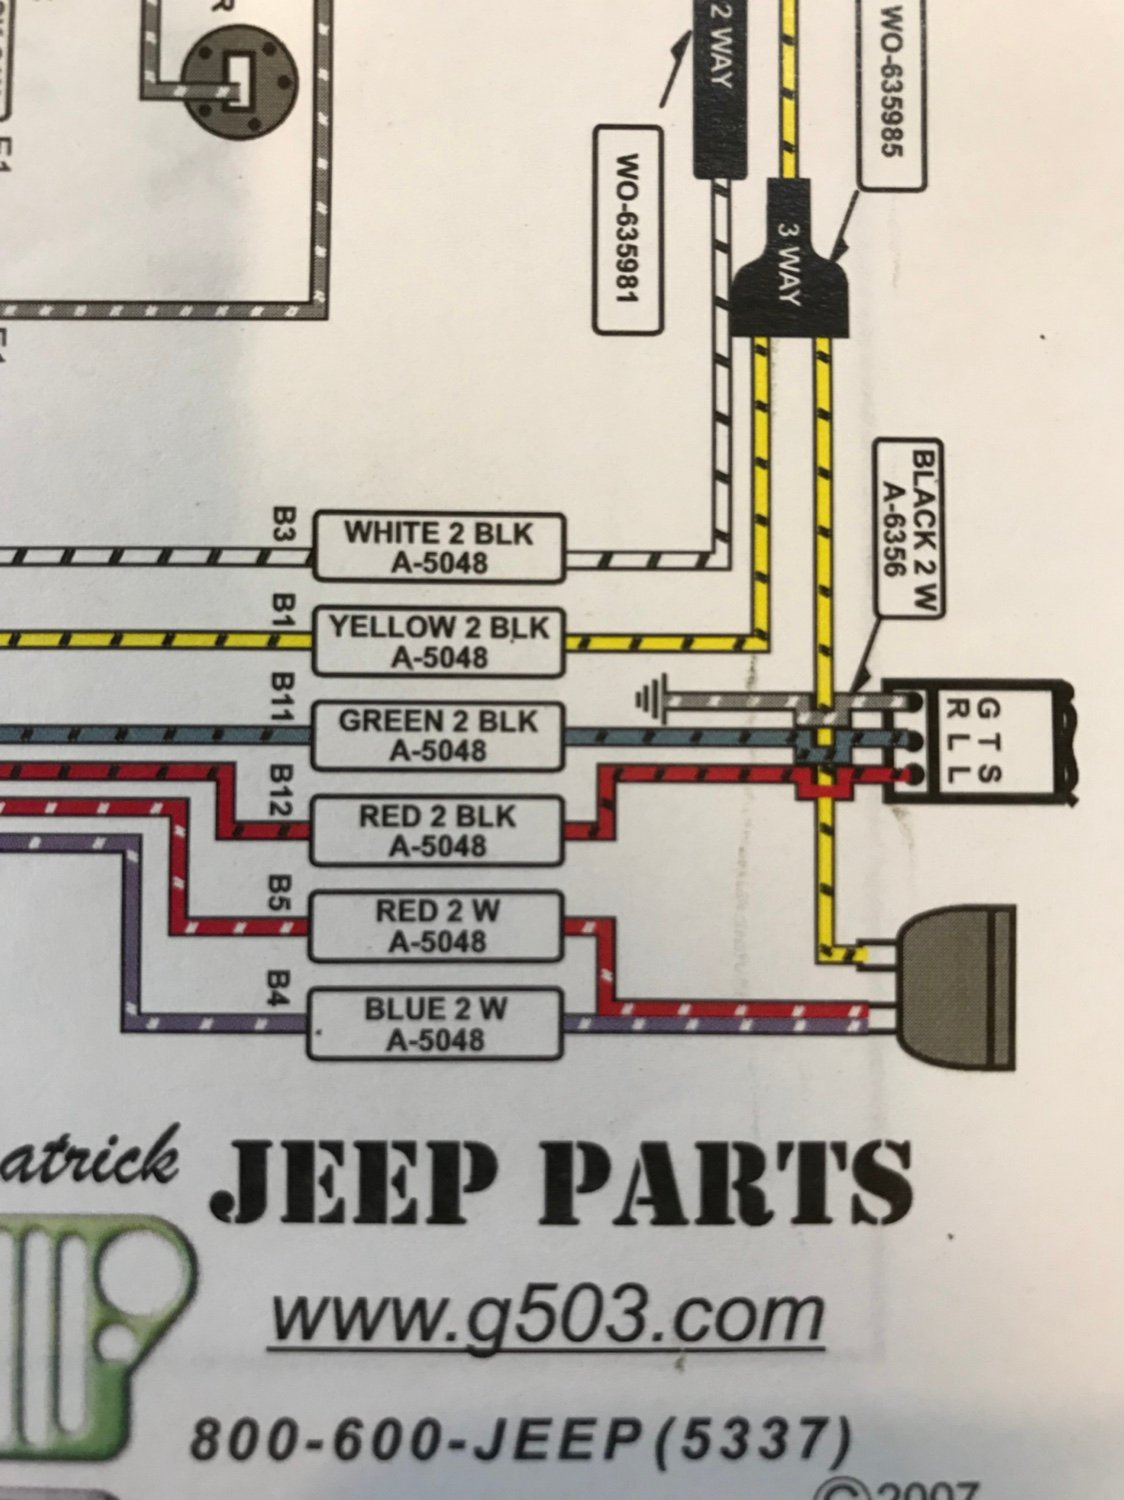 DIAGRAM] 61 Willys Utility Wagon Wiring Diagram FULL Version HD Quality Wiring  Diagram - DIAGRAMICA.MONDEMODEXL.FRDiagram Database